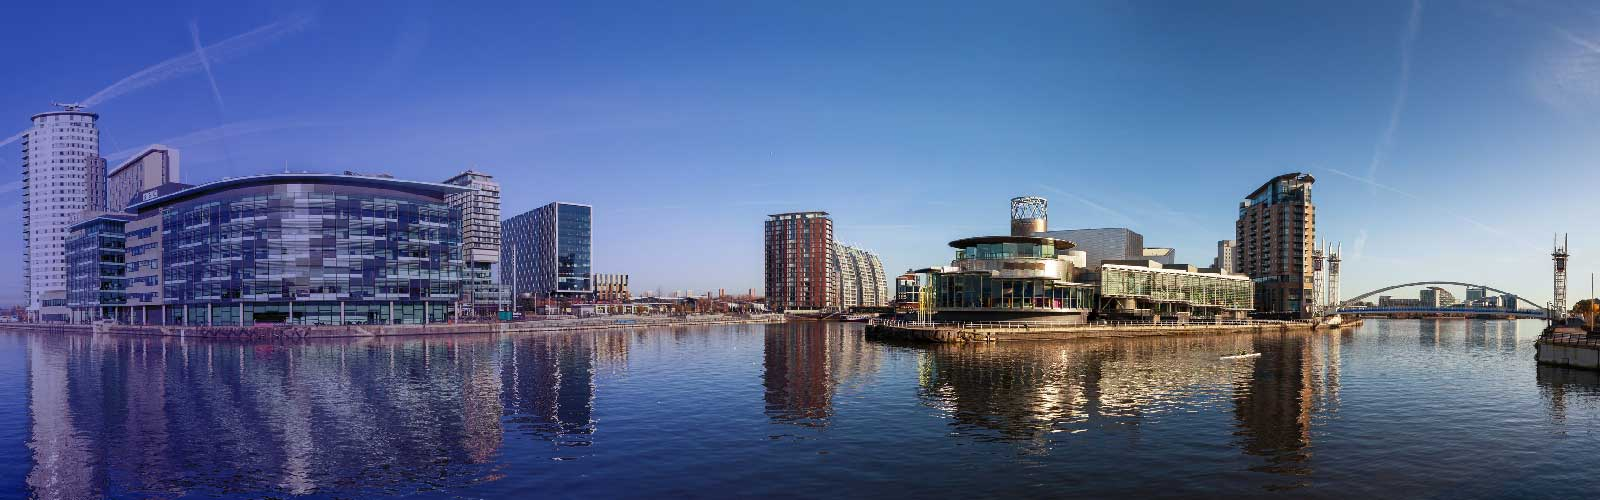 Salford business development area